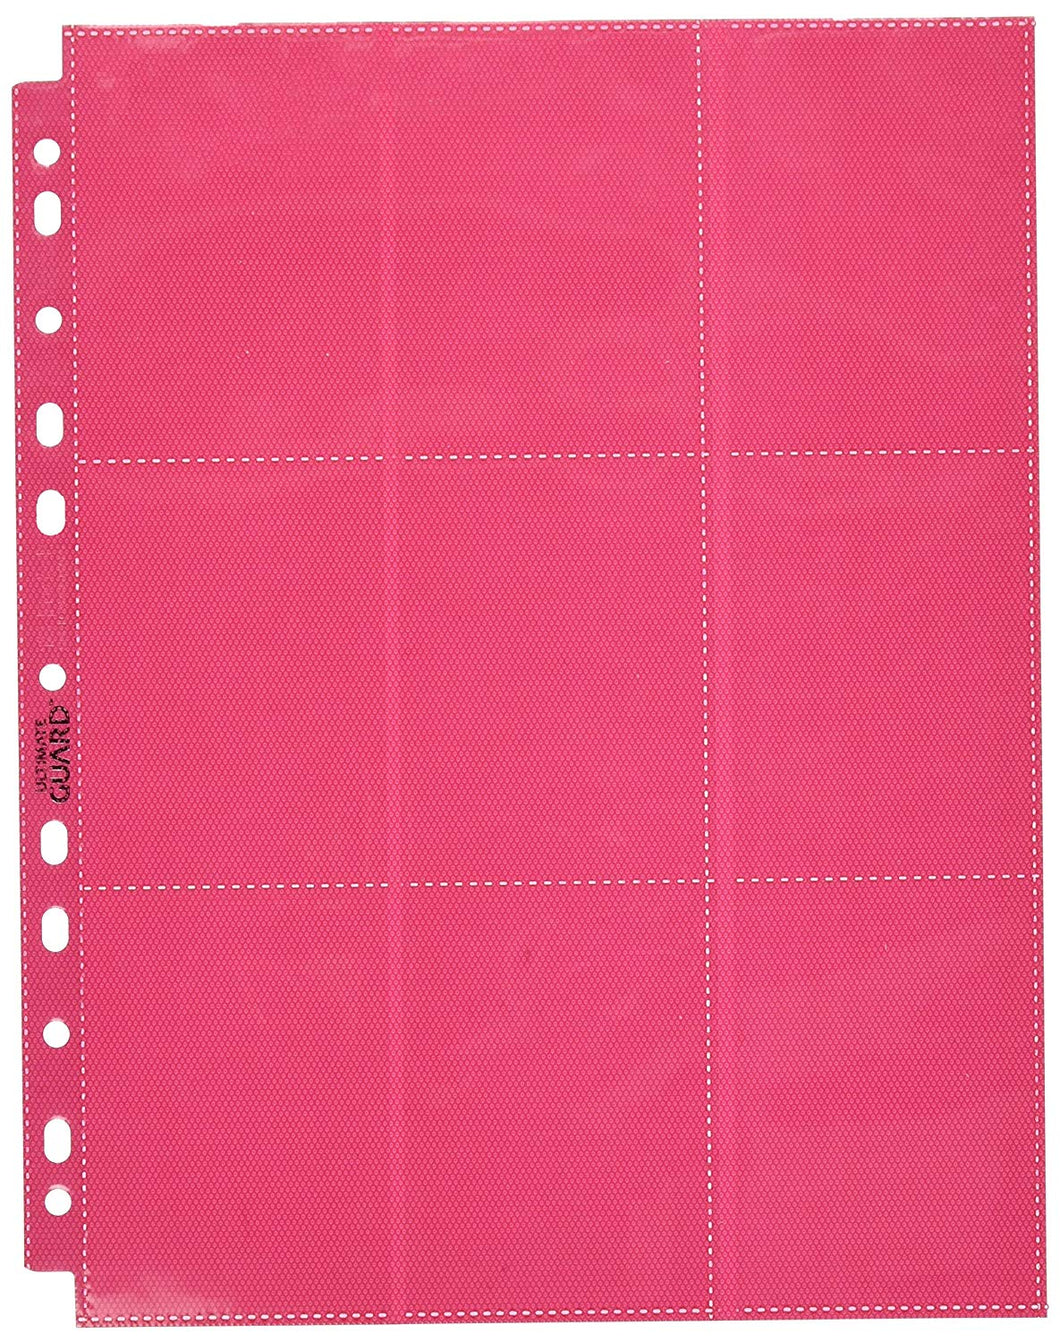 Page Sideload: 18 pockets, 10 pages - Red